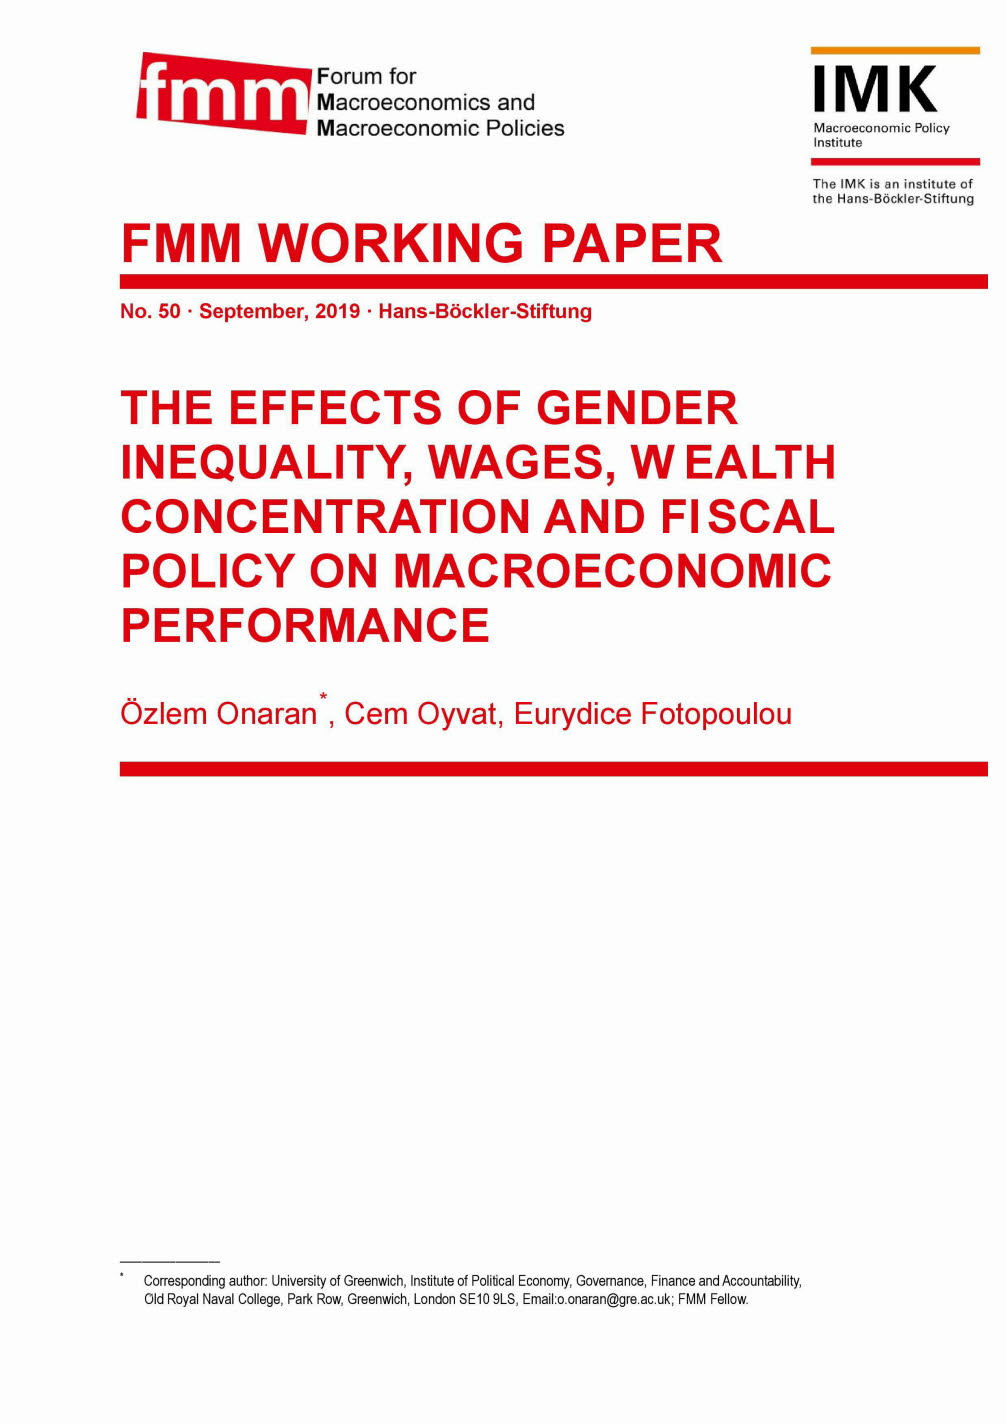 The effects of gender inequality, wages, wealth concentration and fiscal policy on macroeconomic performance